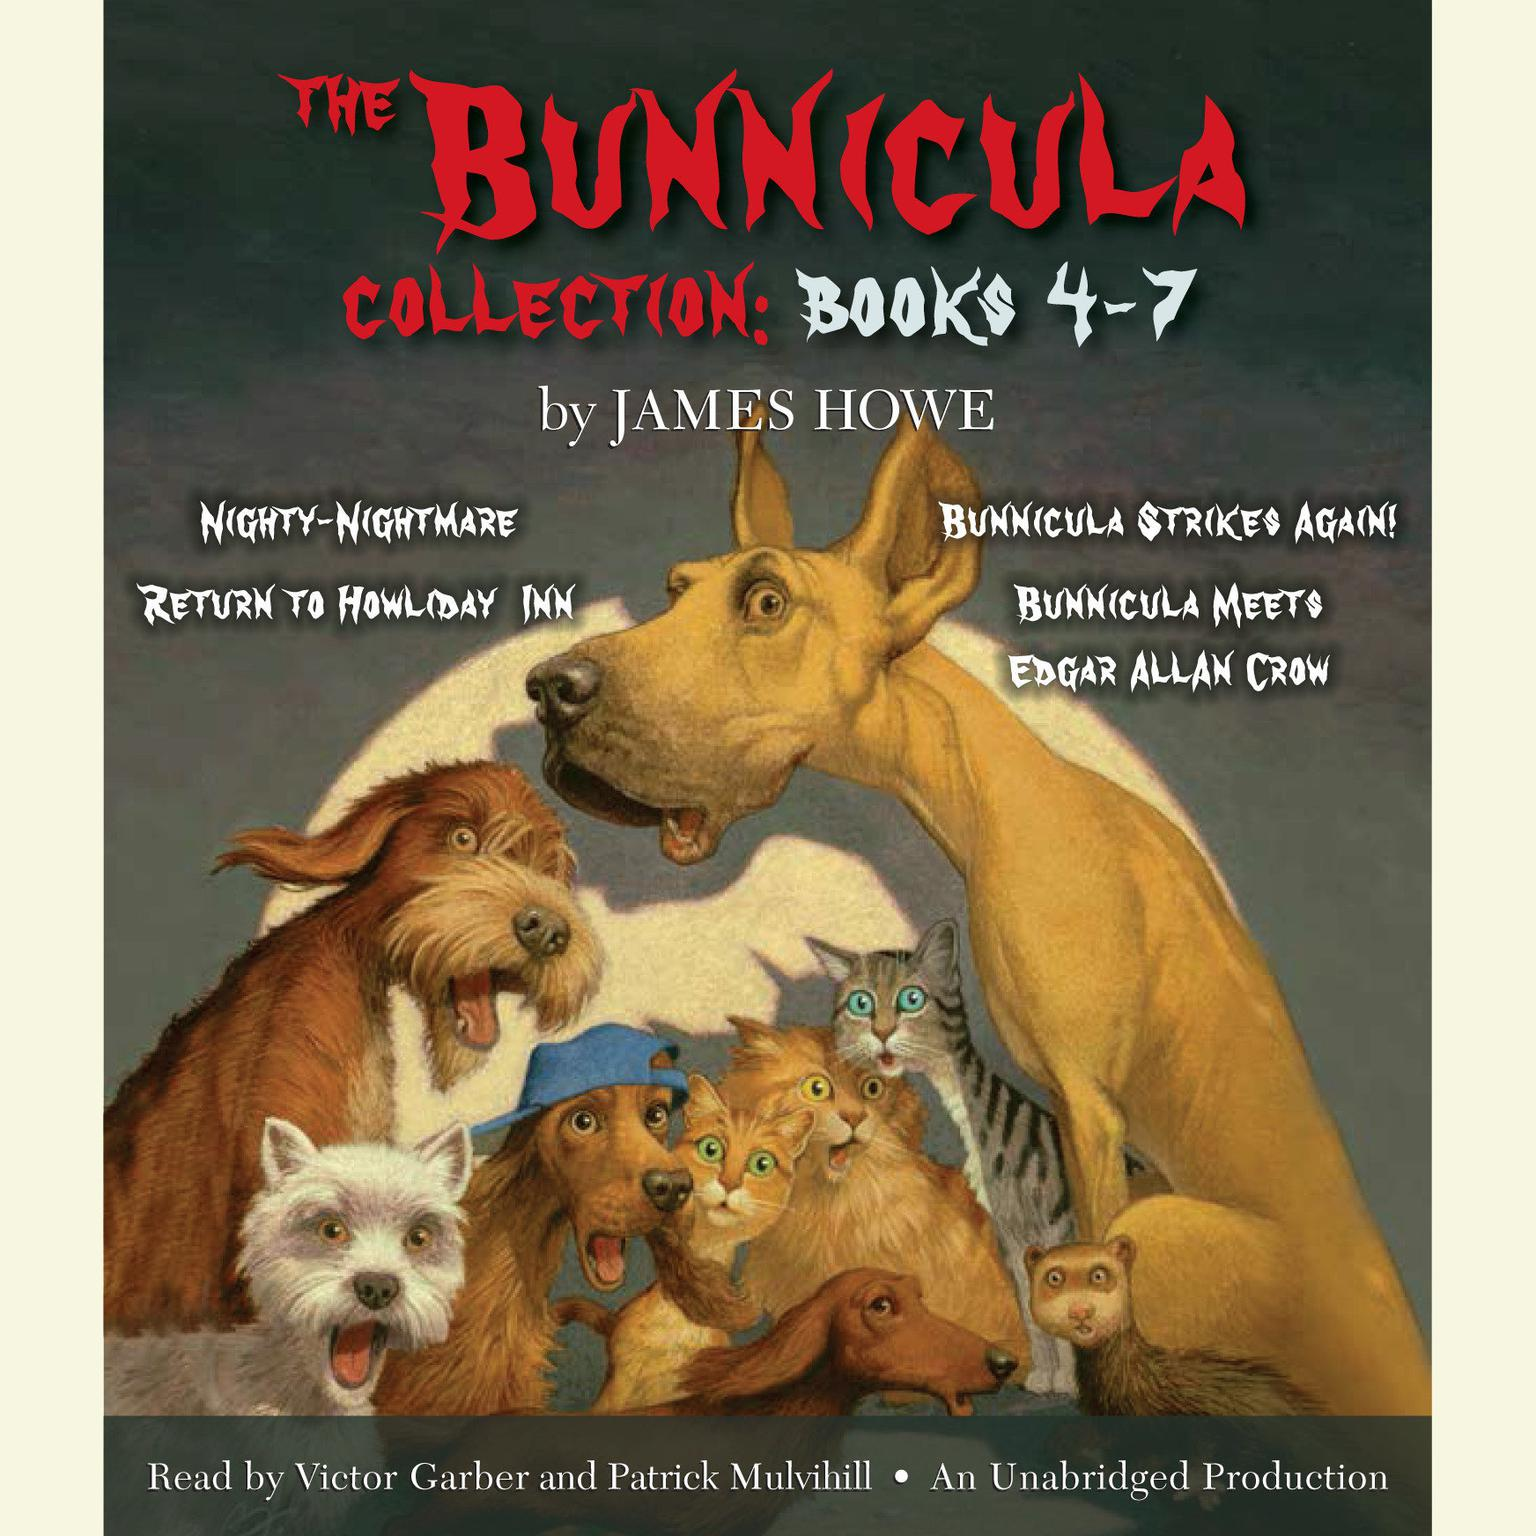 Printable The Bunnicula Collection: Books 4-7: Nighty-Nightmare; Return to Howliday Inn; Bunnicula Strikes Again!; Bunnicula Meets Edgar Allan Crow Audiobook Cover Art